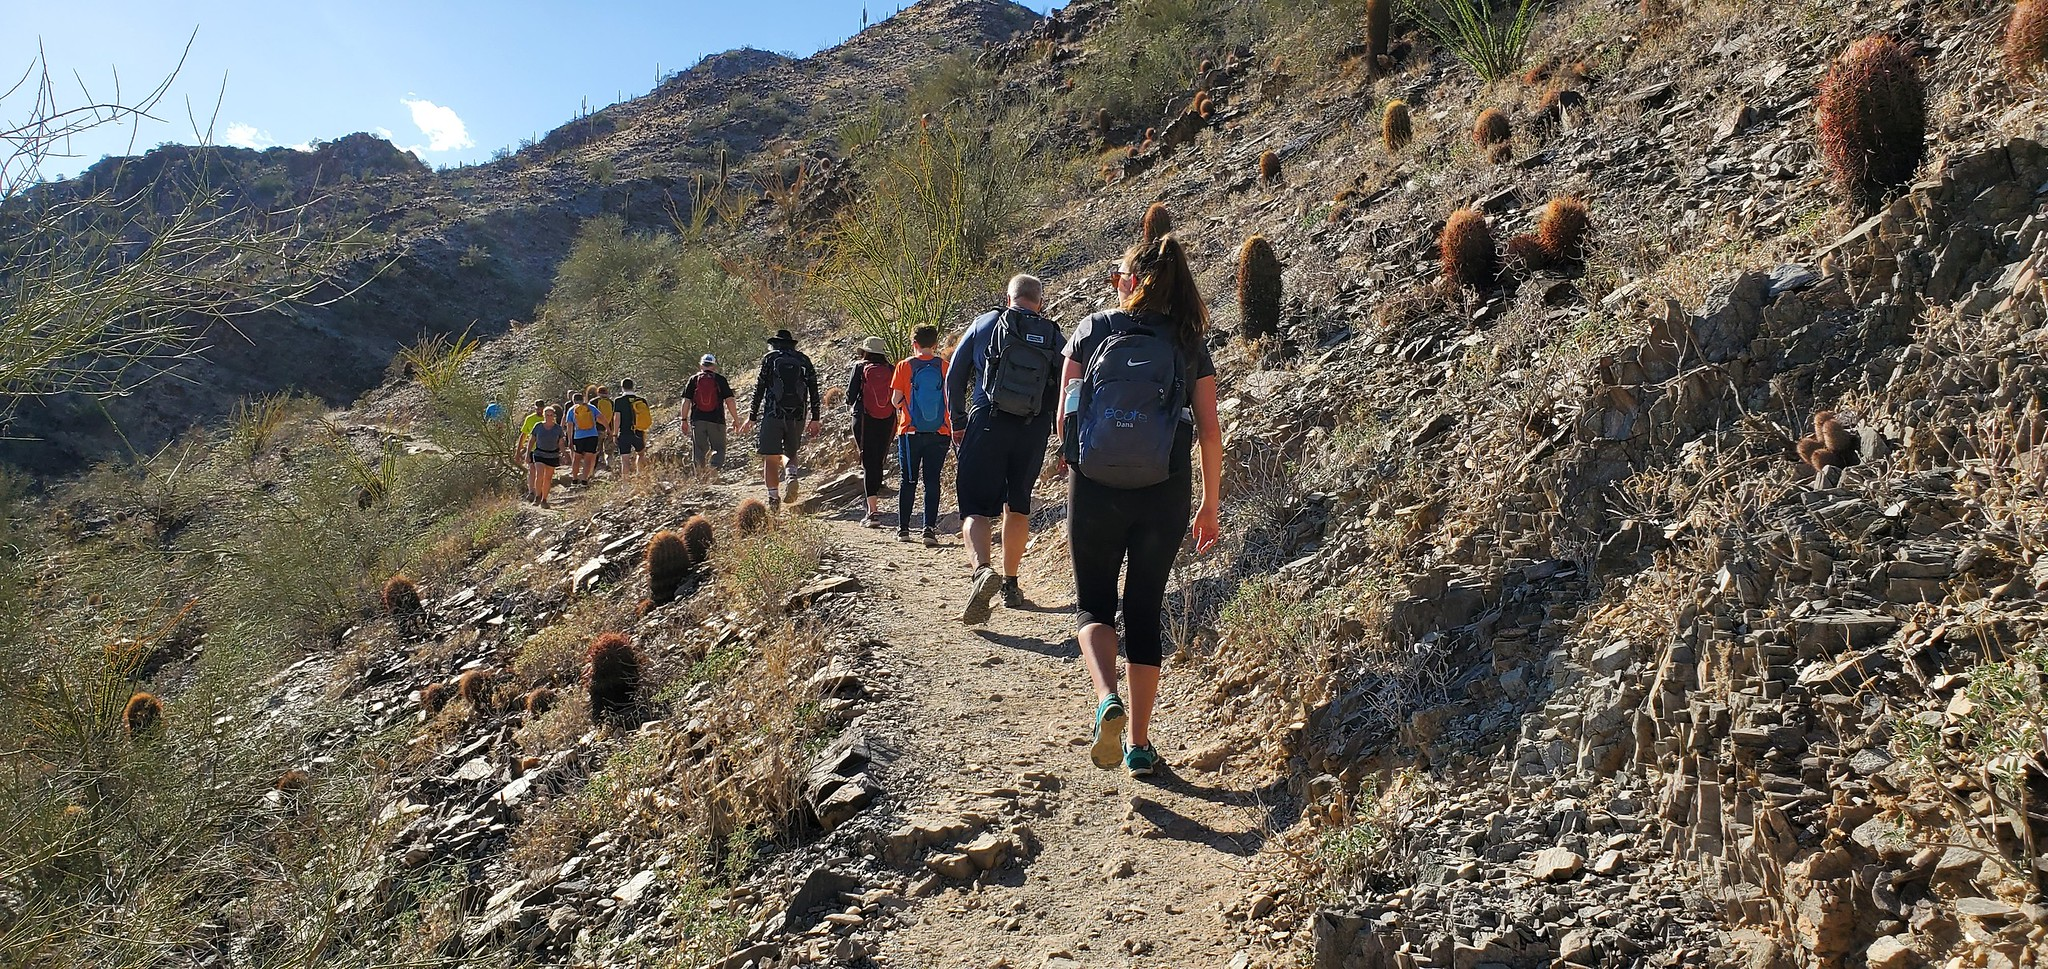 A long line of hikers make their way across a rocky ridge line during a Wild Bunch Desert Guides adventure.